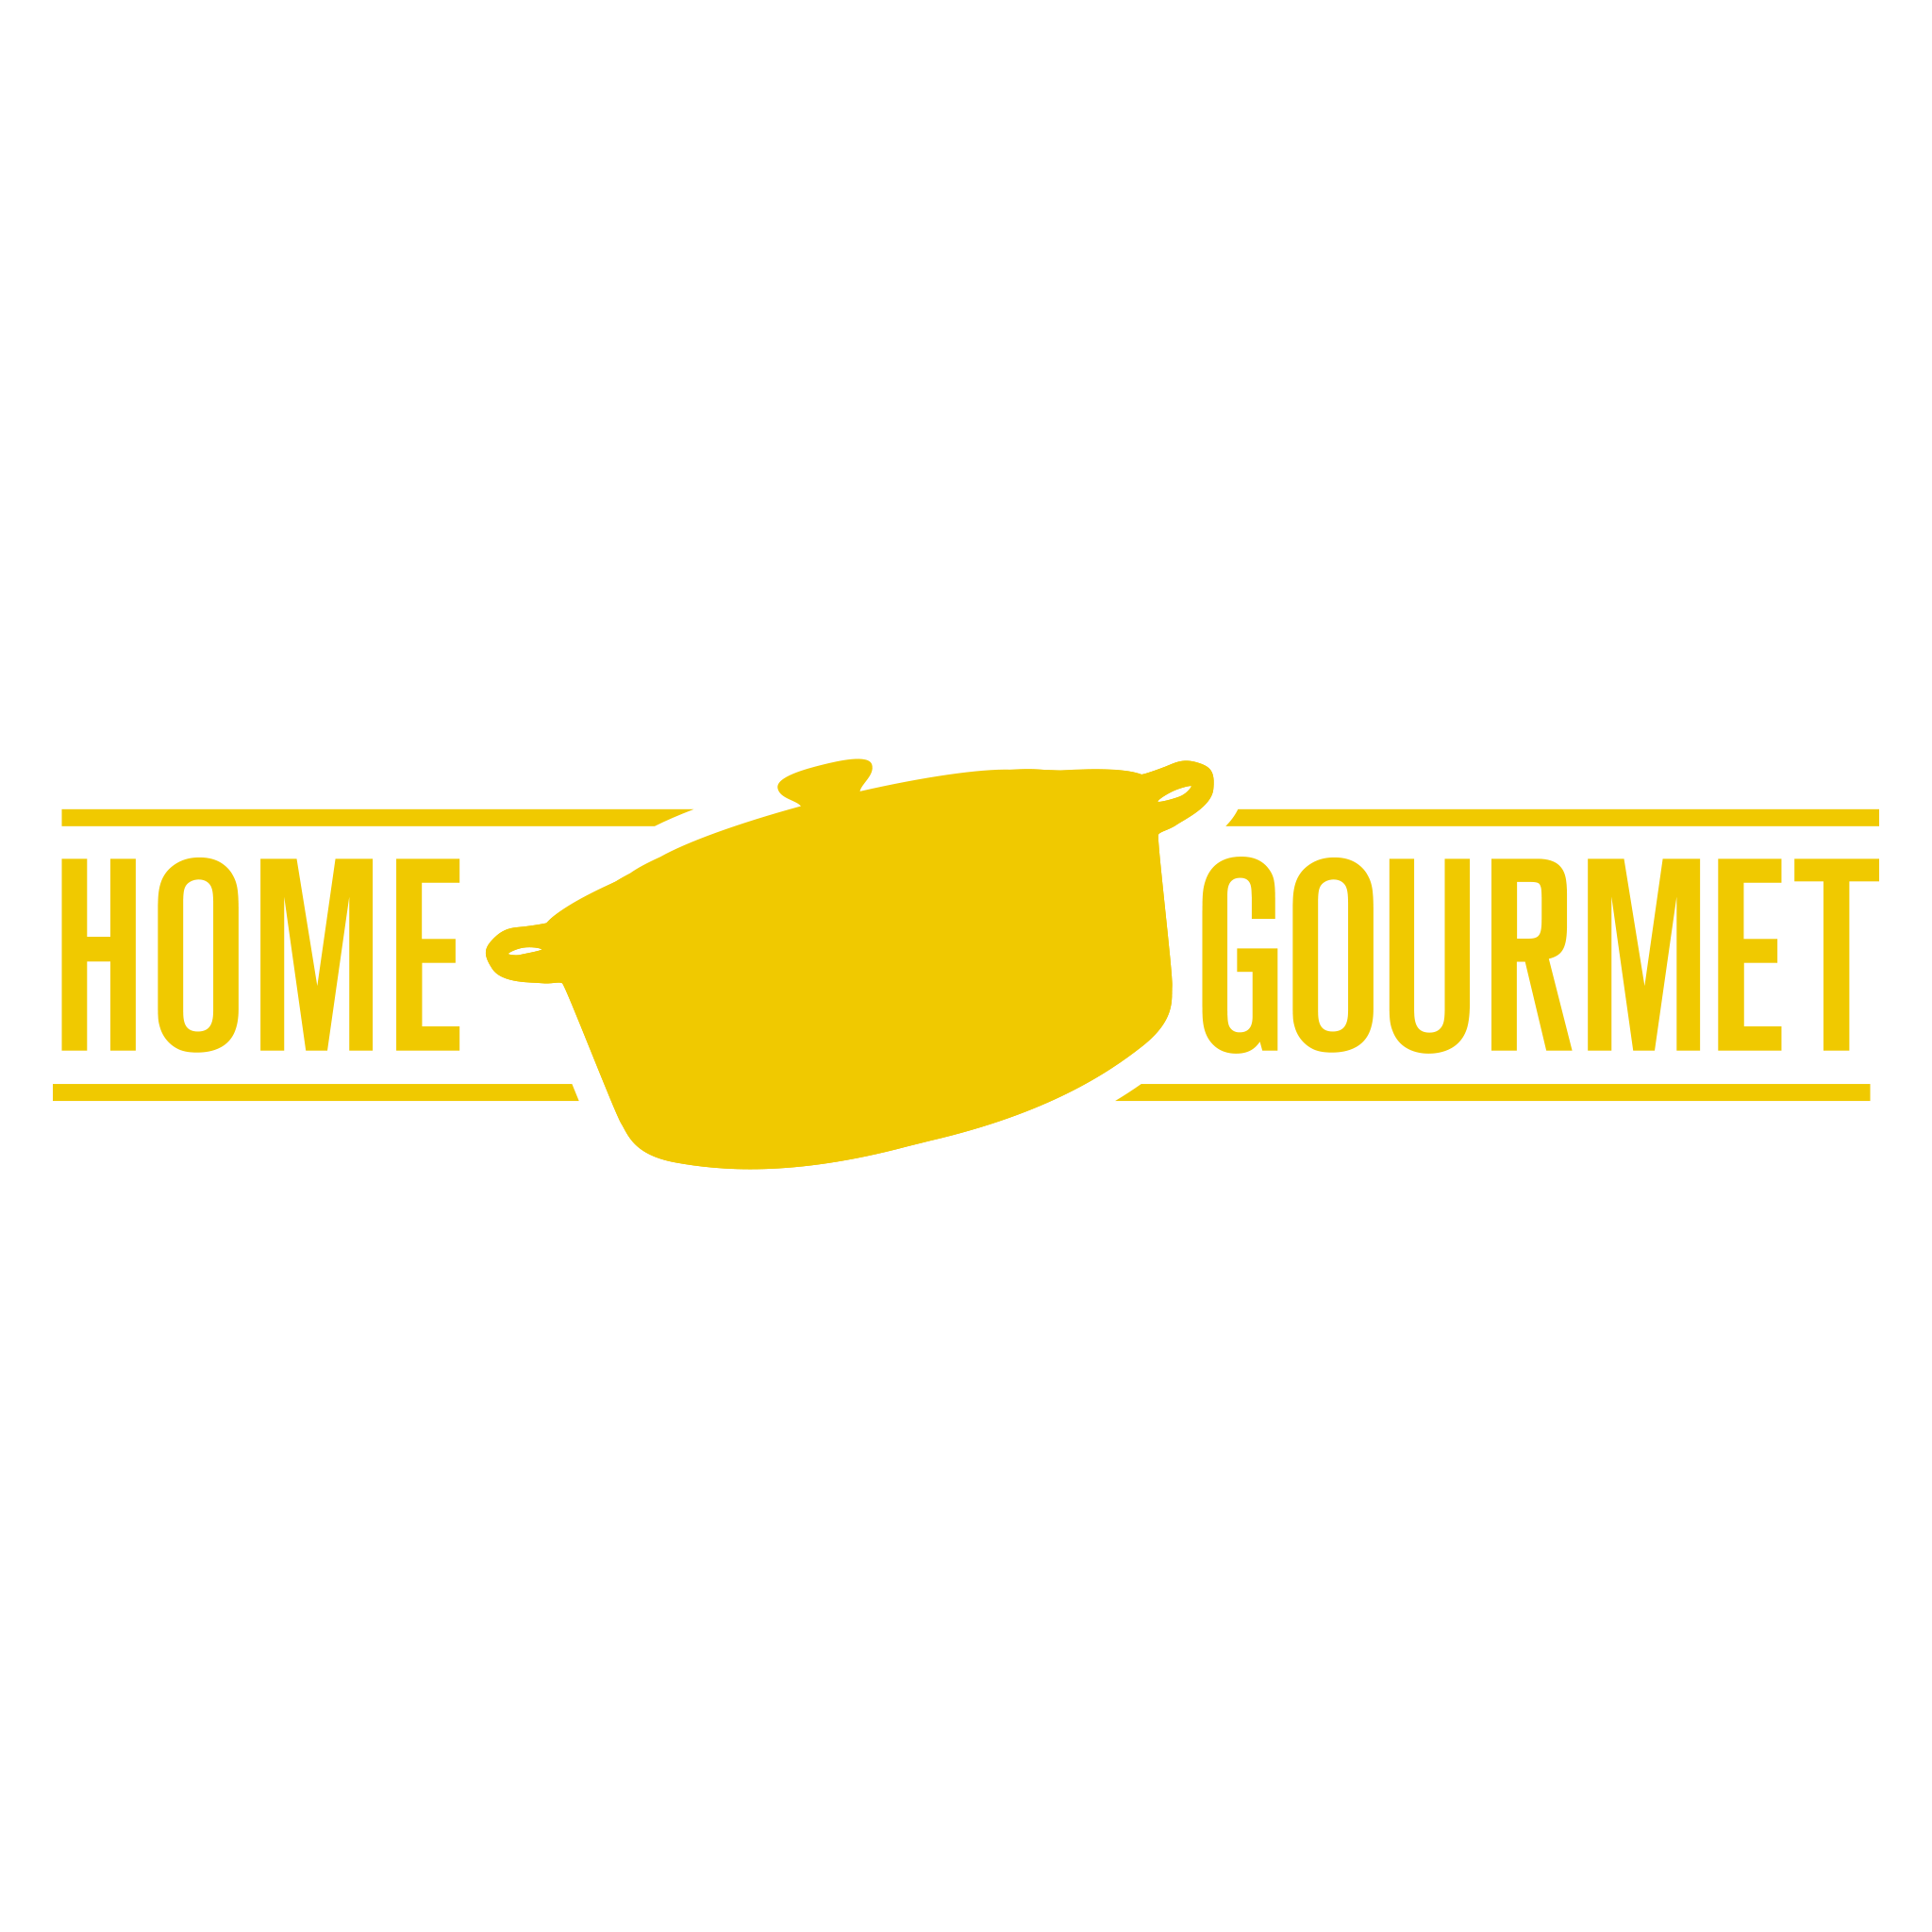 Home Gourmet (HomeGroup)